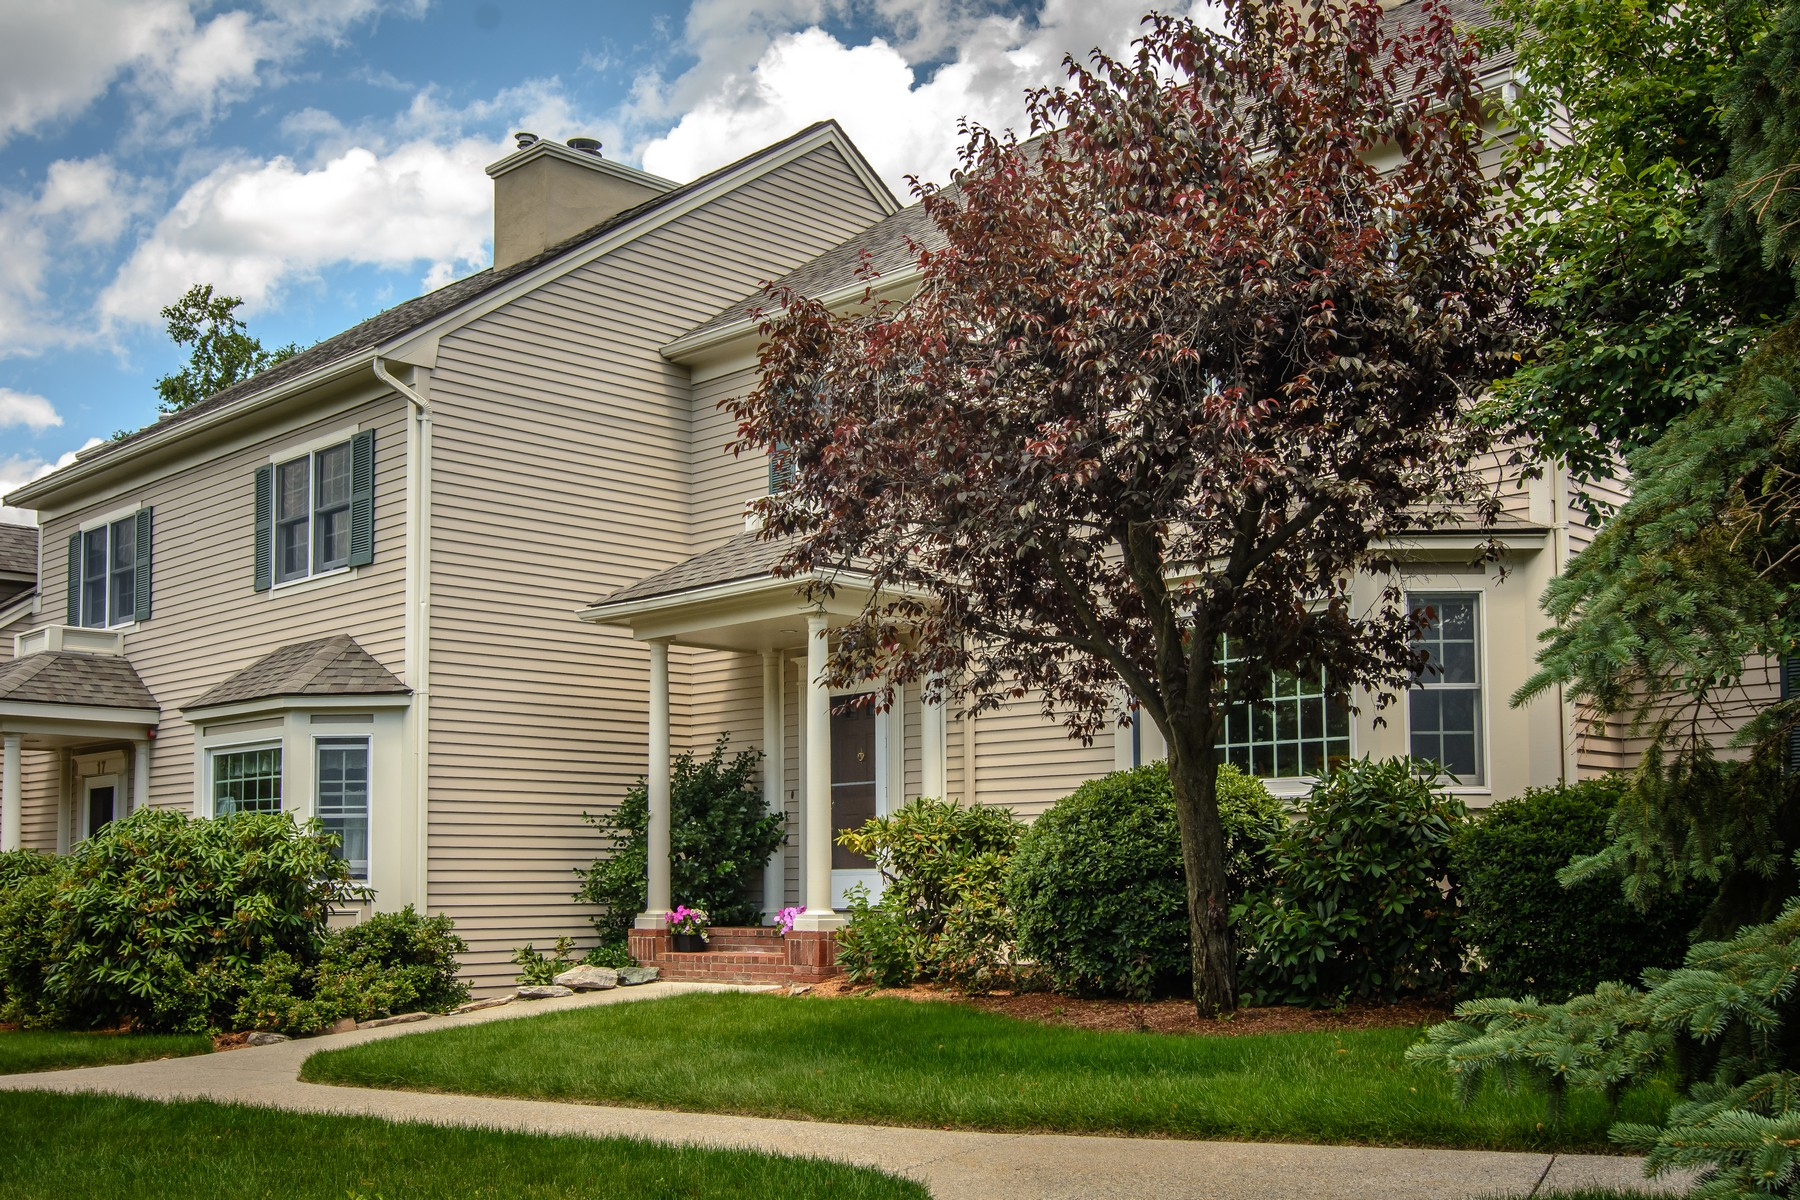 Townhouse for Sale at Highly Desirable Corner Unit - Powder Hill Townhouse 15 Powder Hill Way Westborough, Massachusetts, 01581 United States